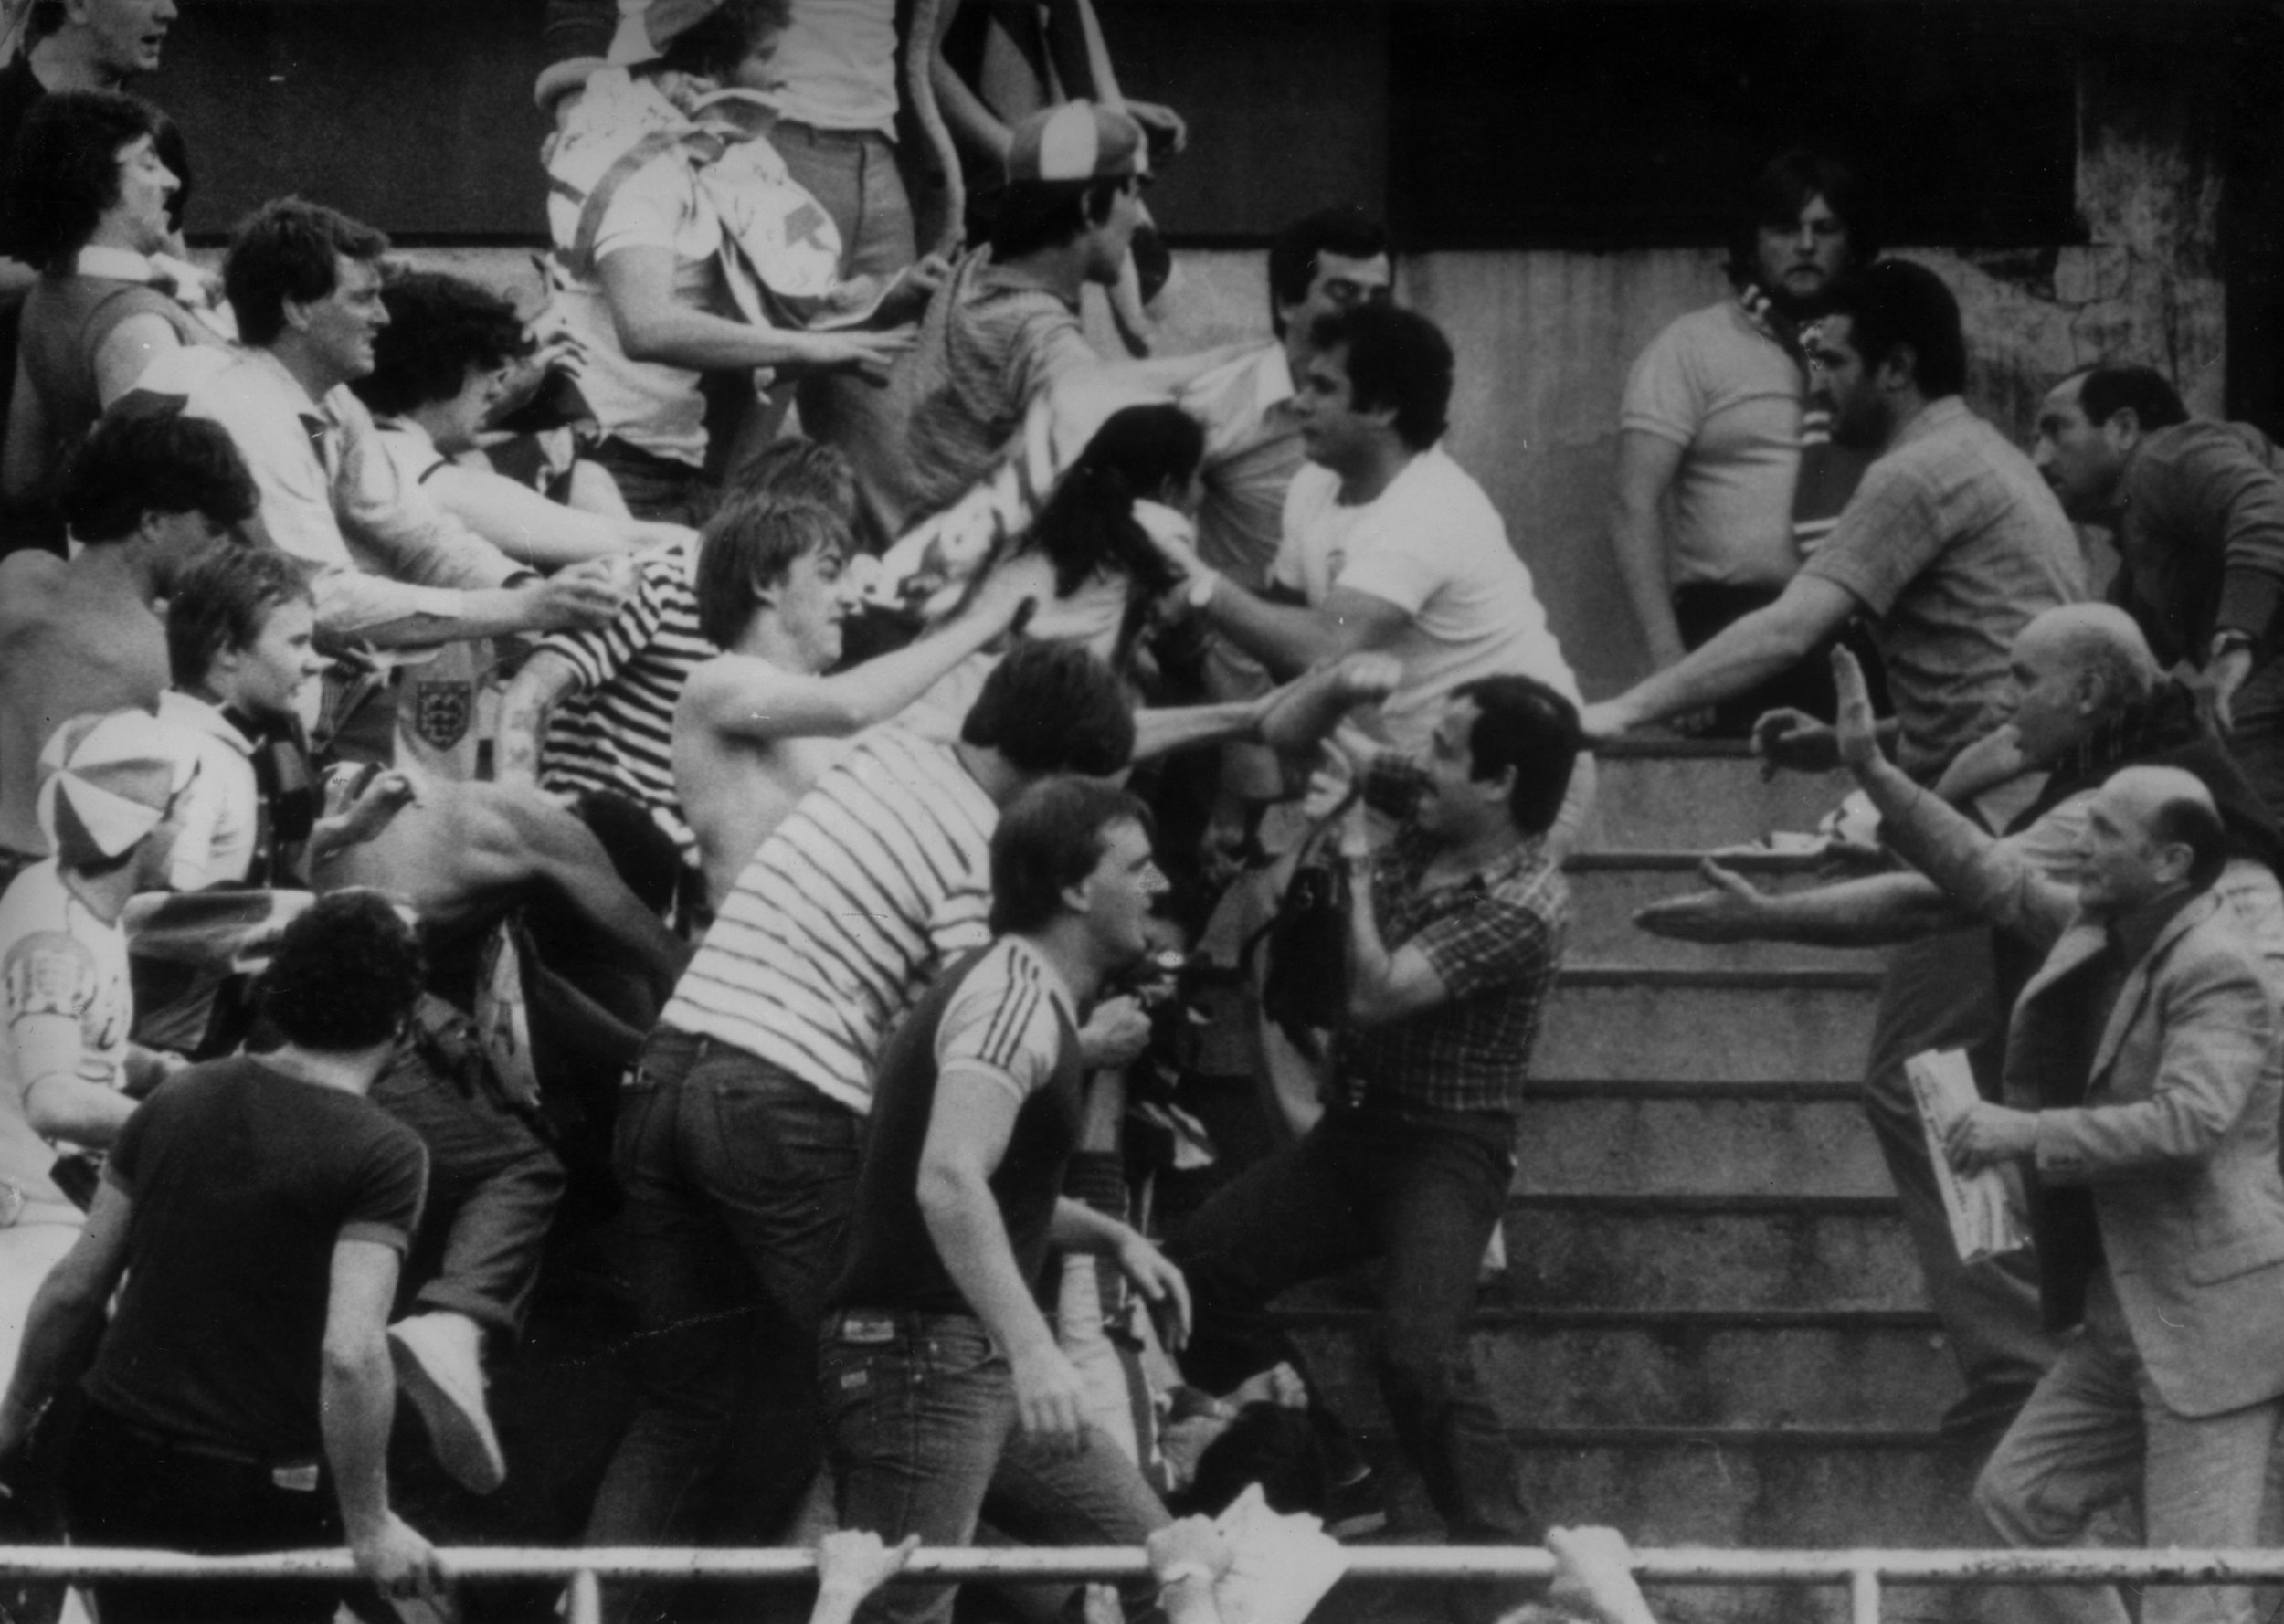 English fans fight rival supporters at a football match in Turin during a European Nations Cup Competition in 1980.  Photo by Central Press/Getty Images